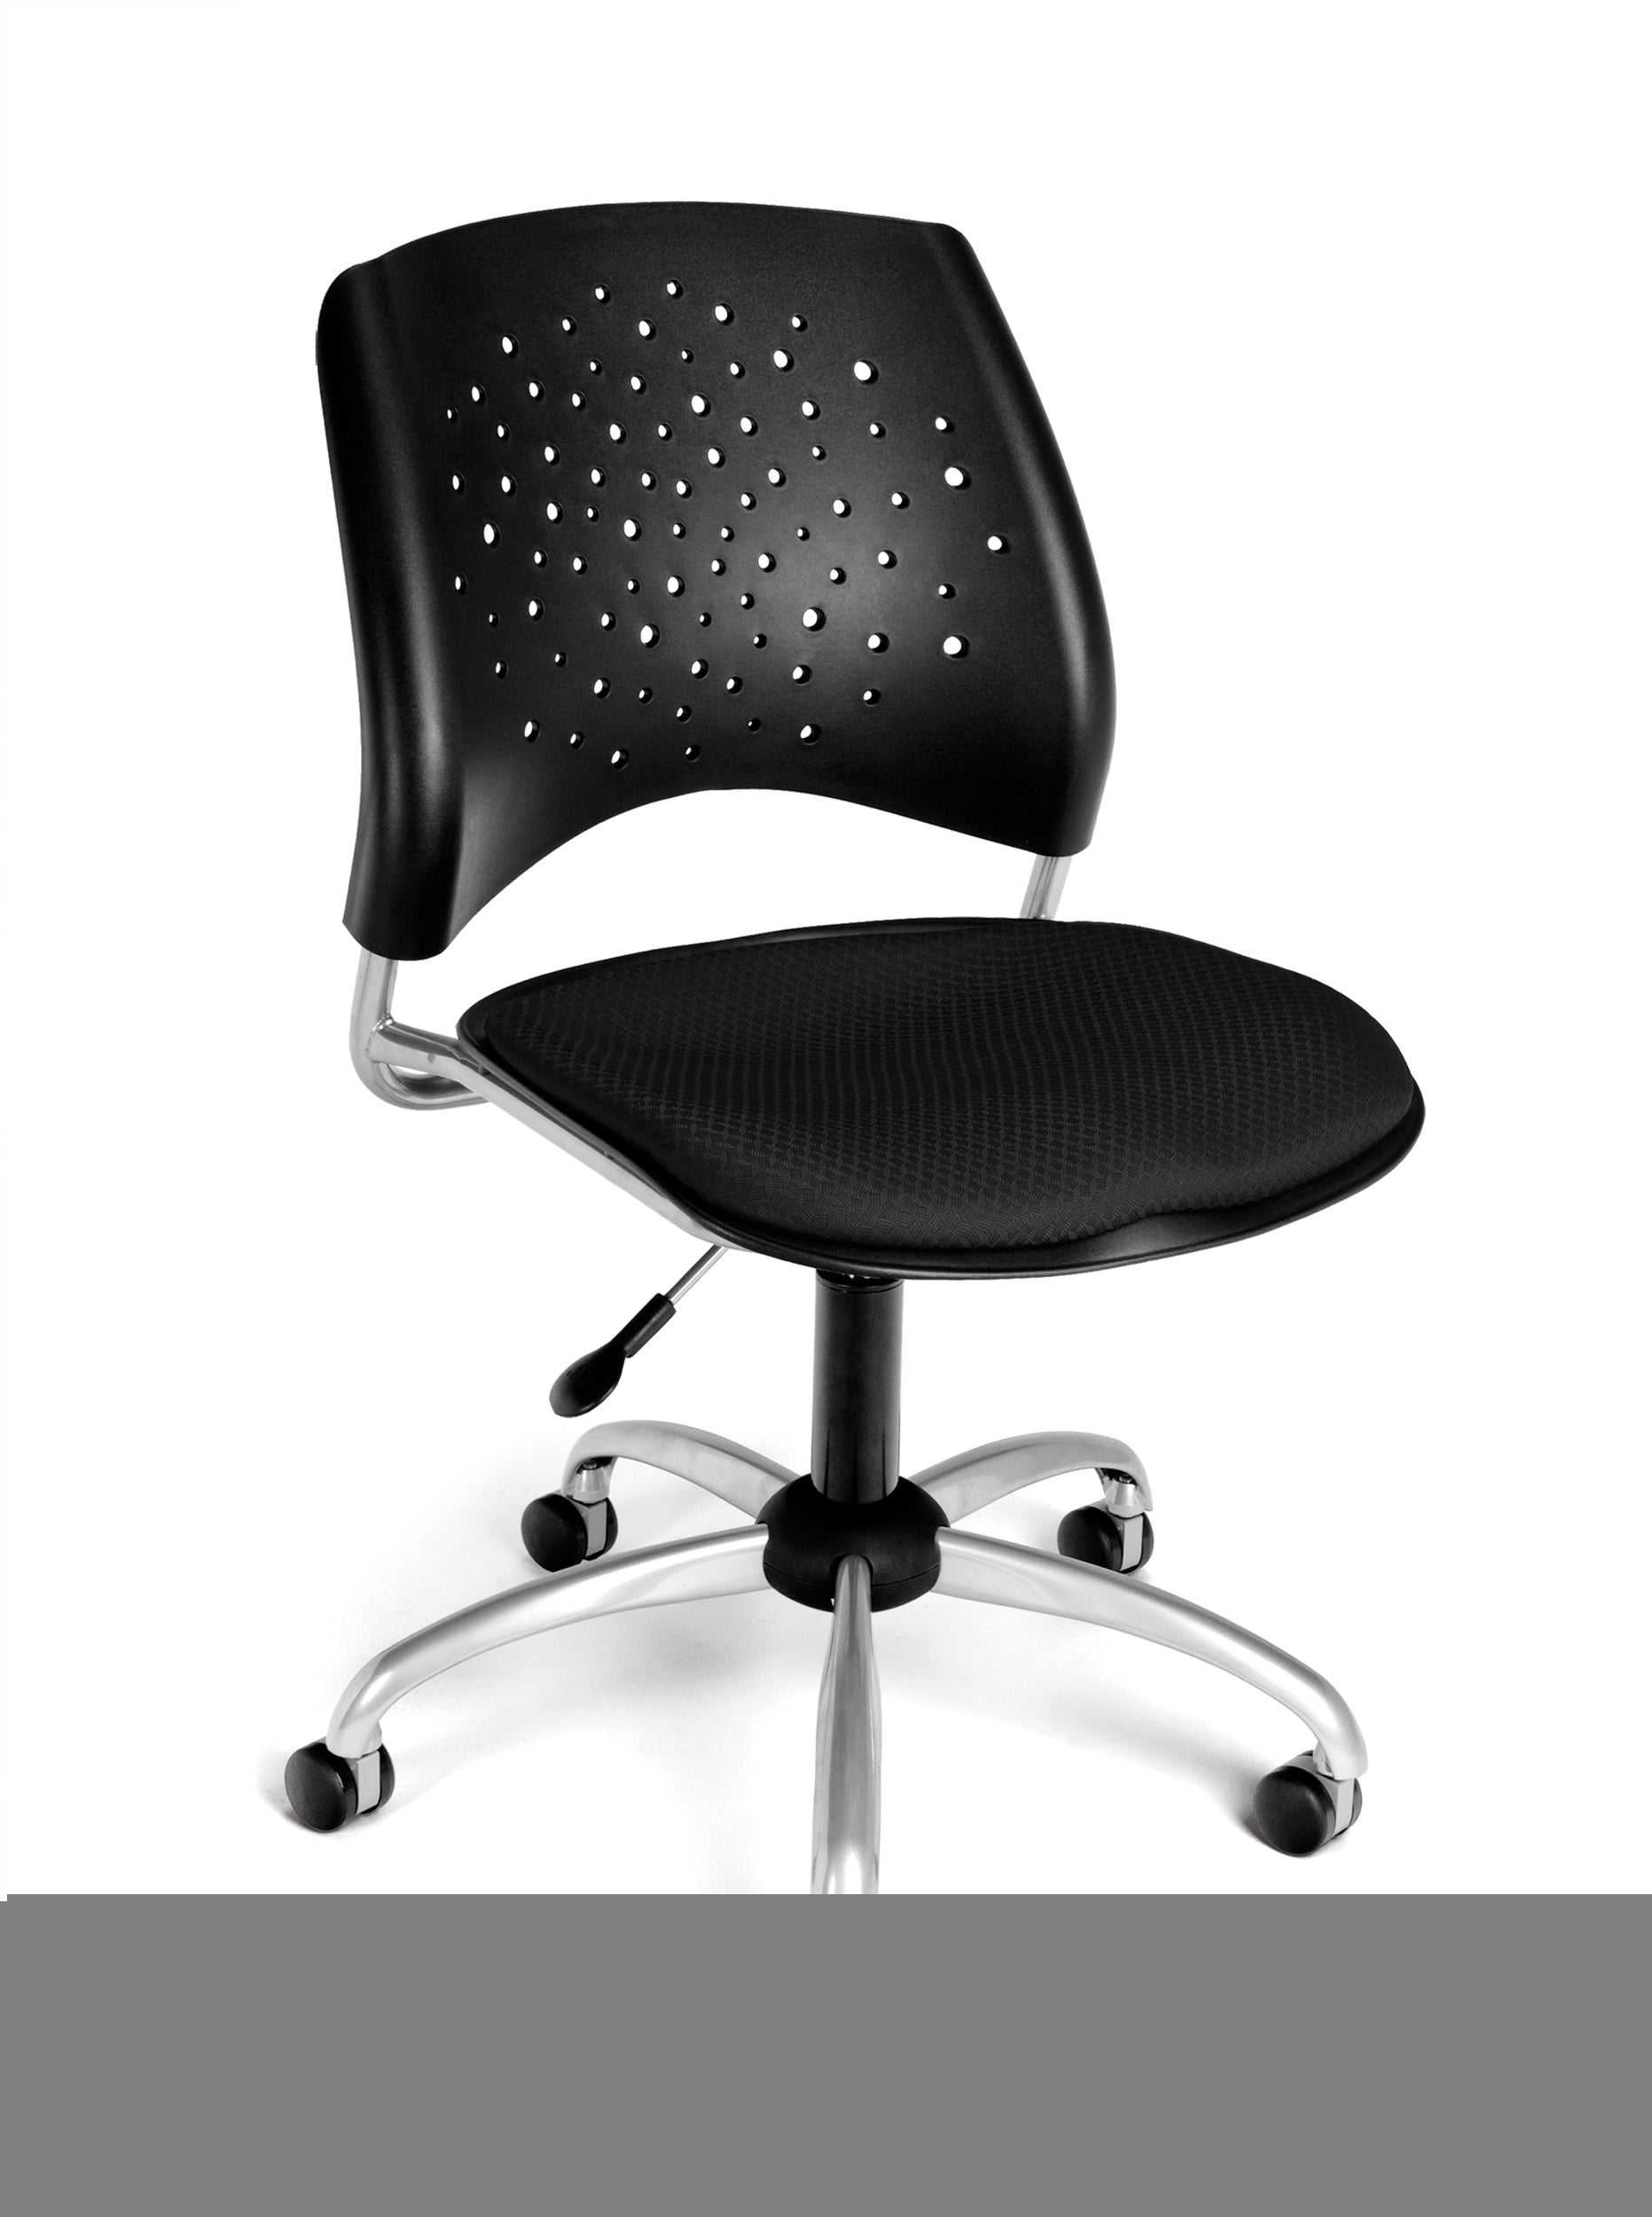 Ofminc Model 326 Stars Series Armless Fabric Swivel Chair